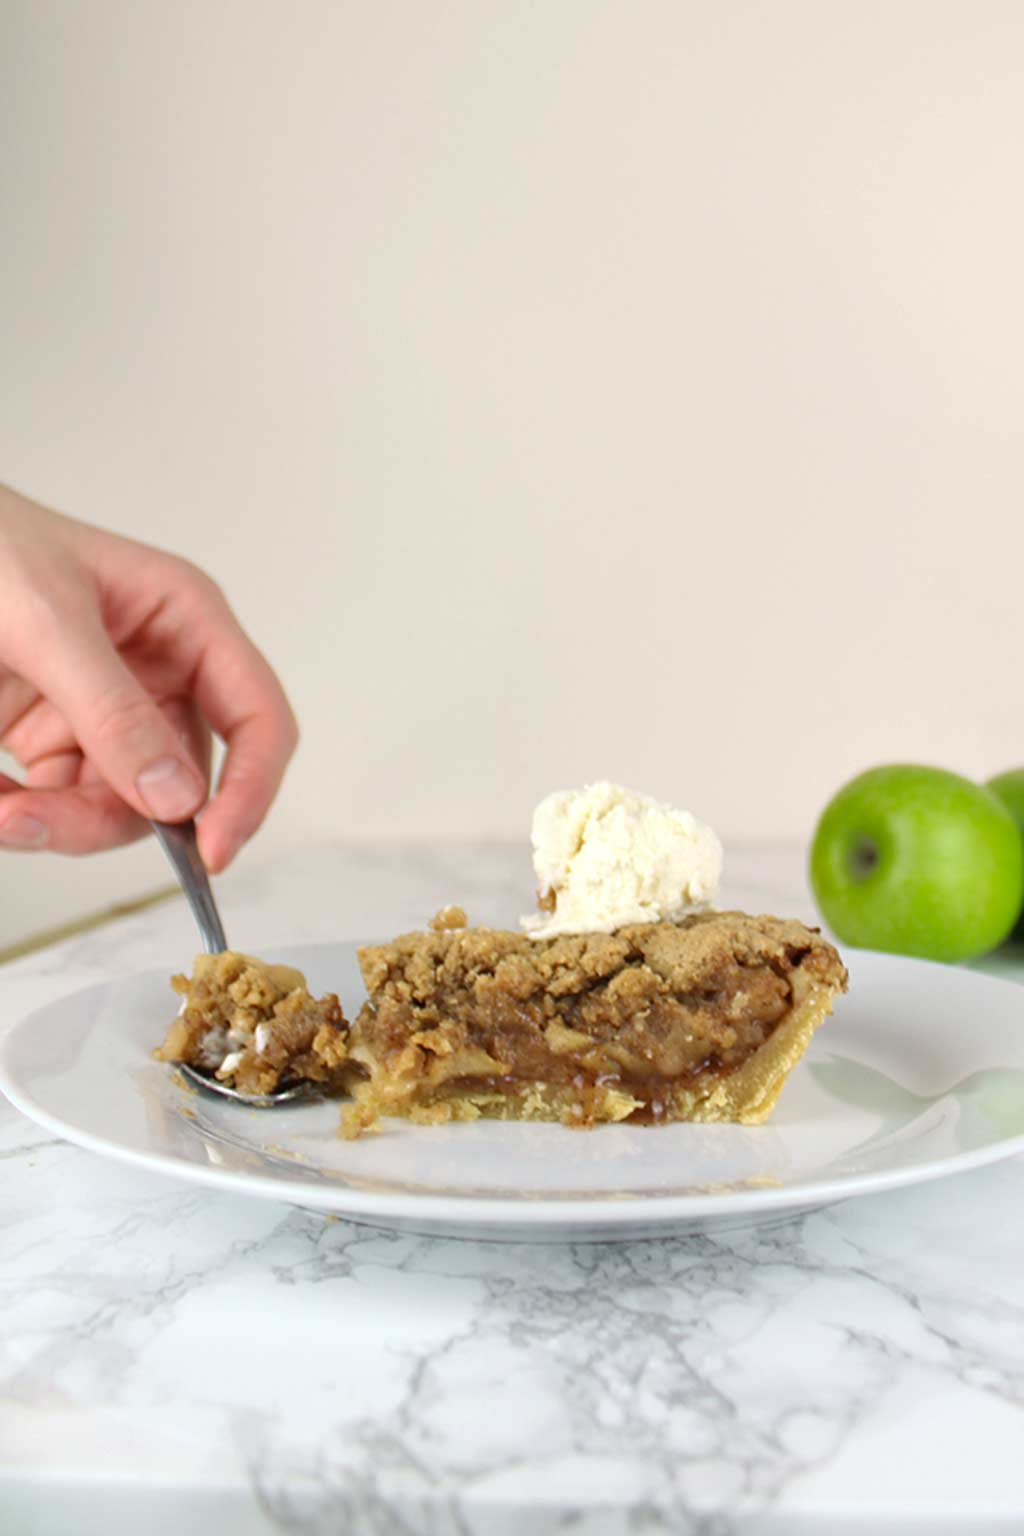 spoon cutting into a slice of vegan apple crumble pie on a plate